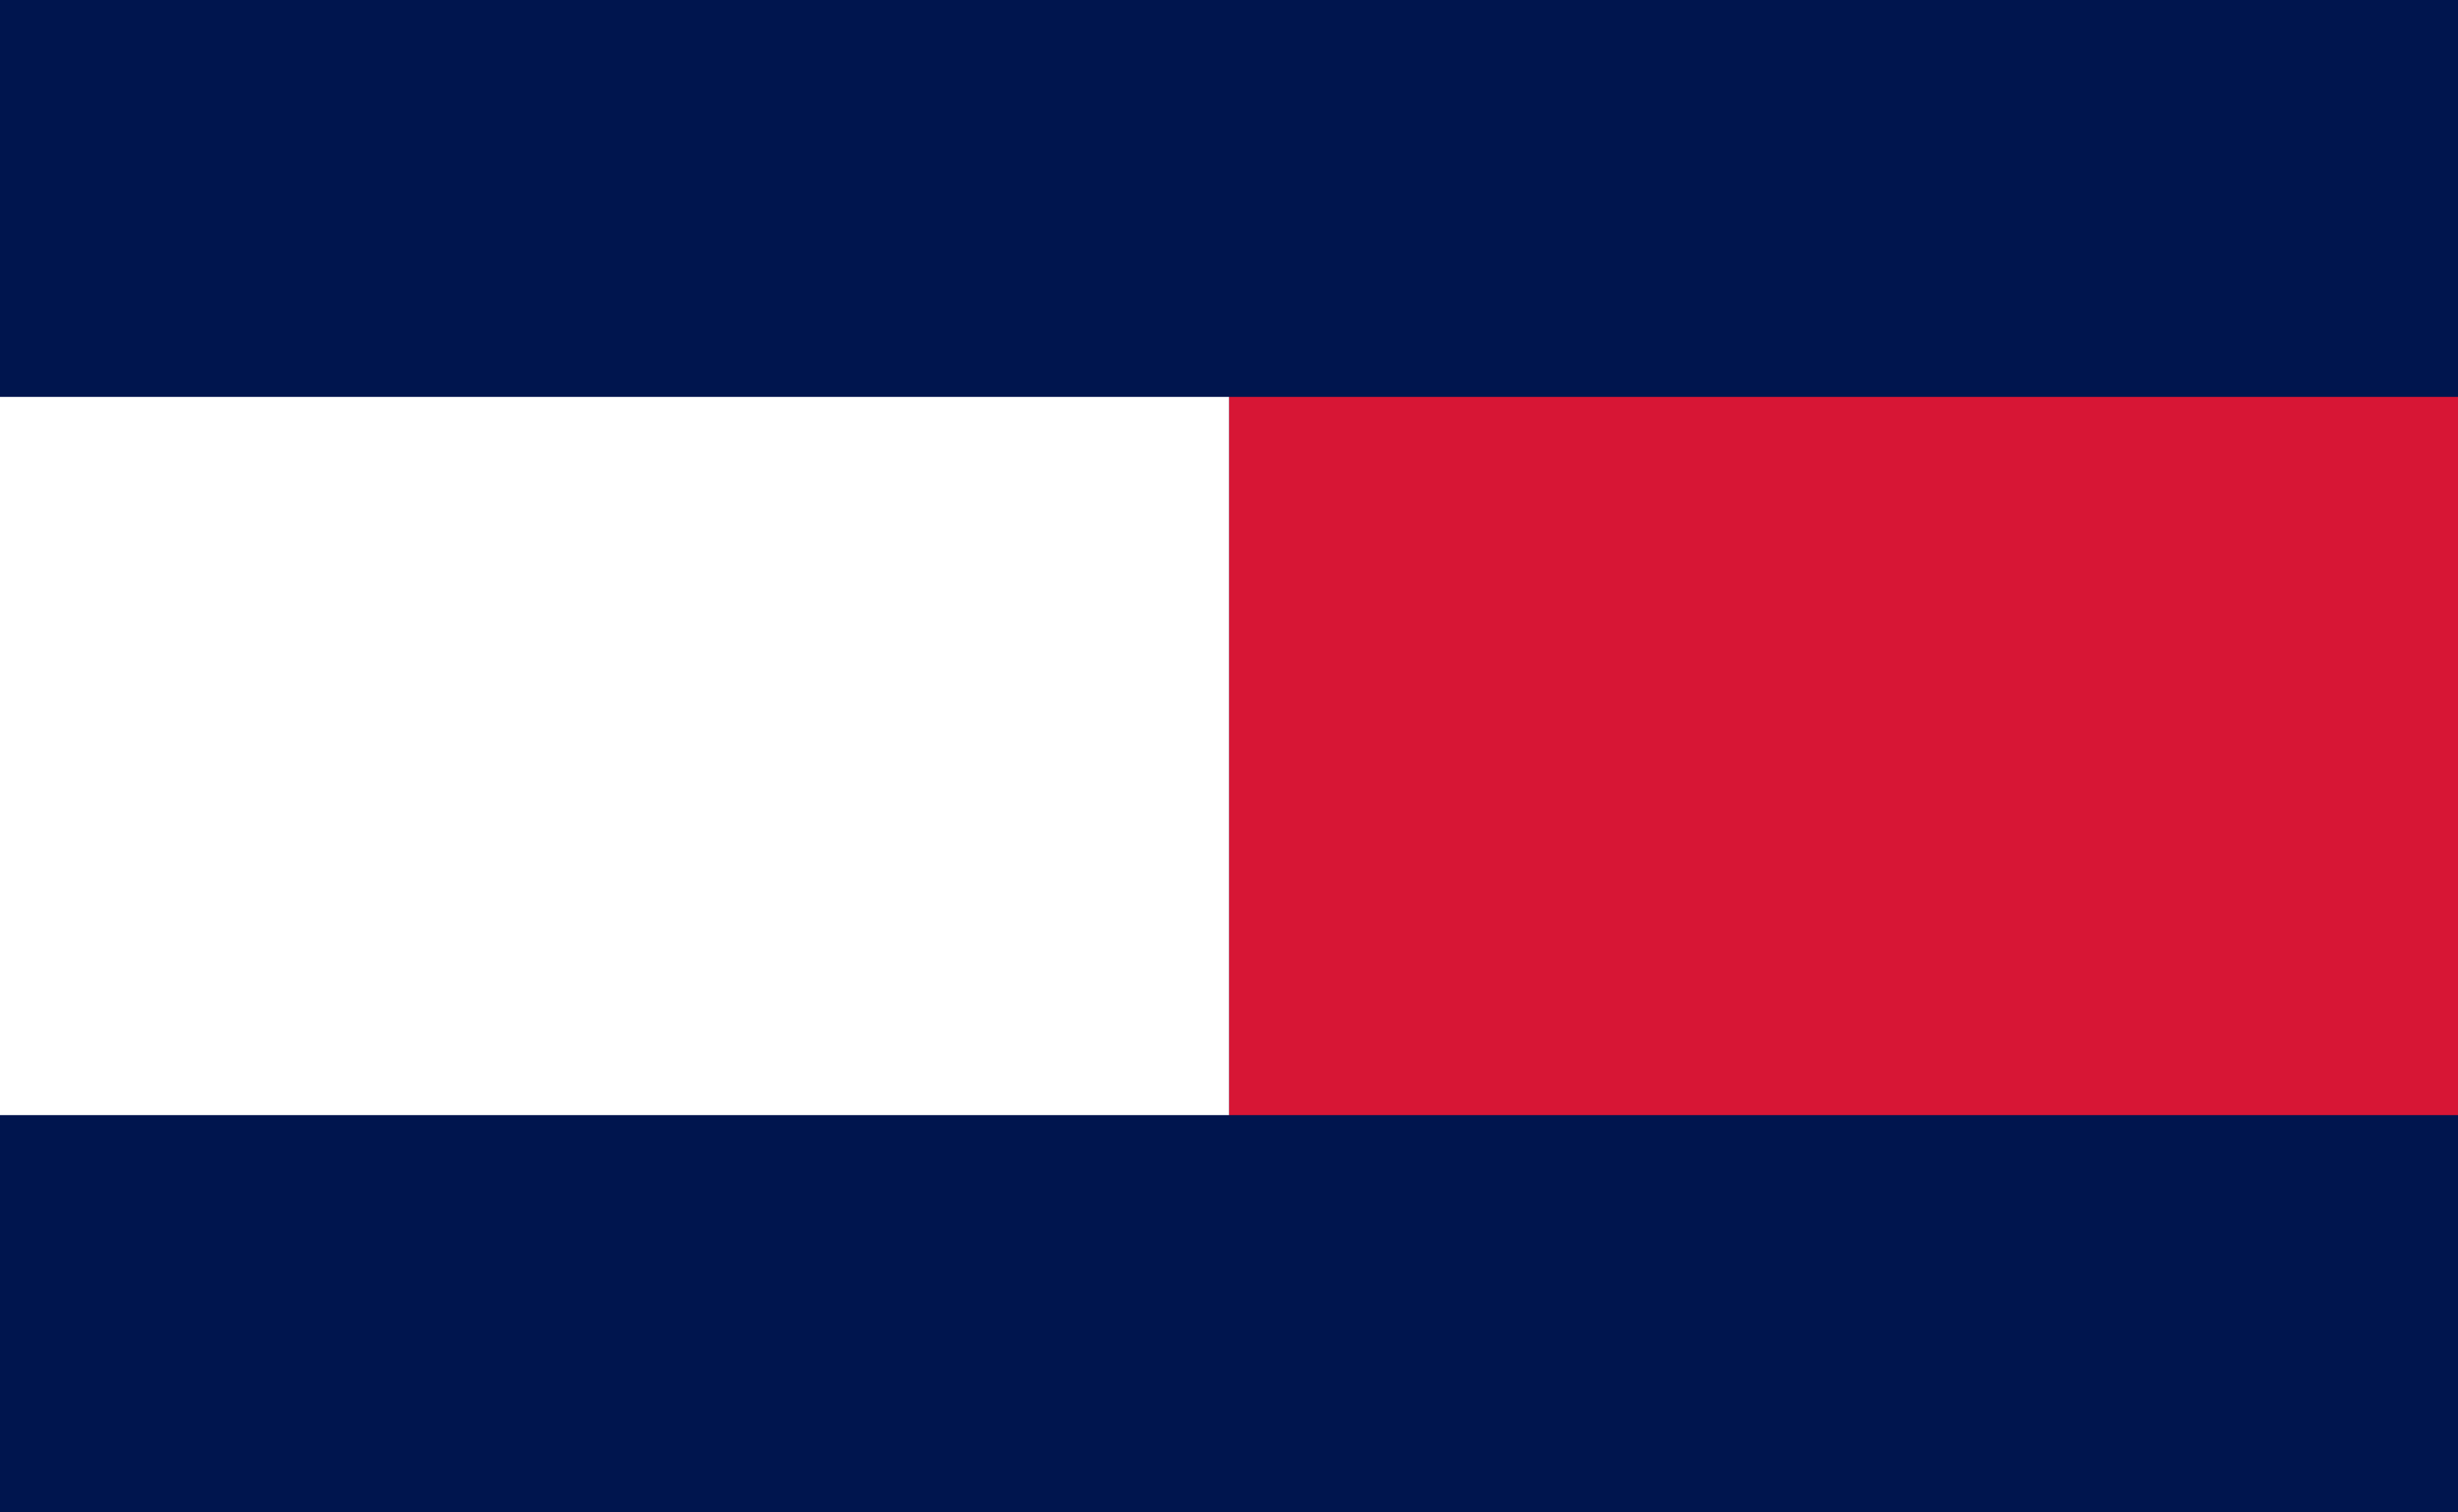 Tommy Hilfiger has a great flag : vexillology.